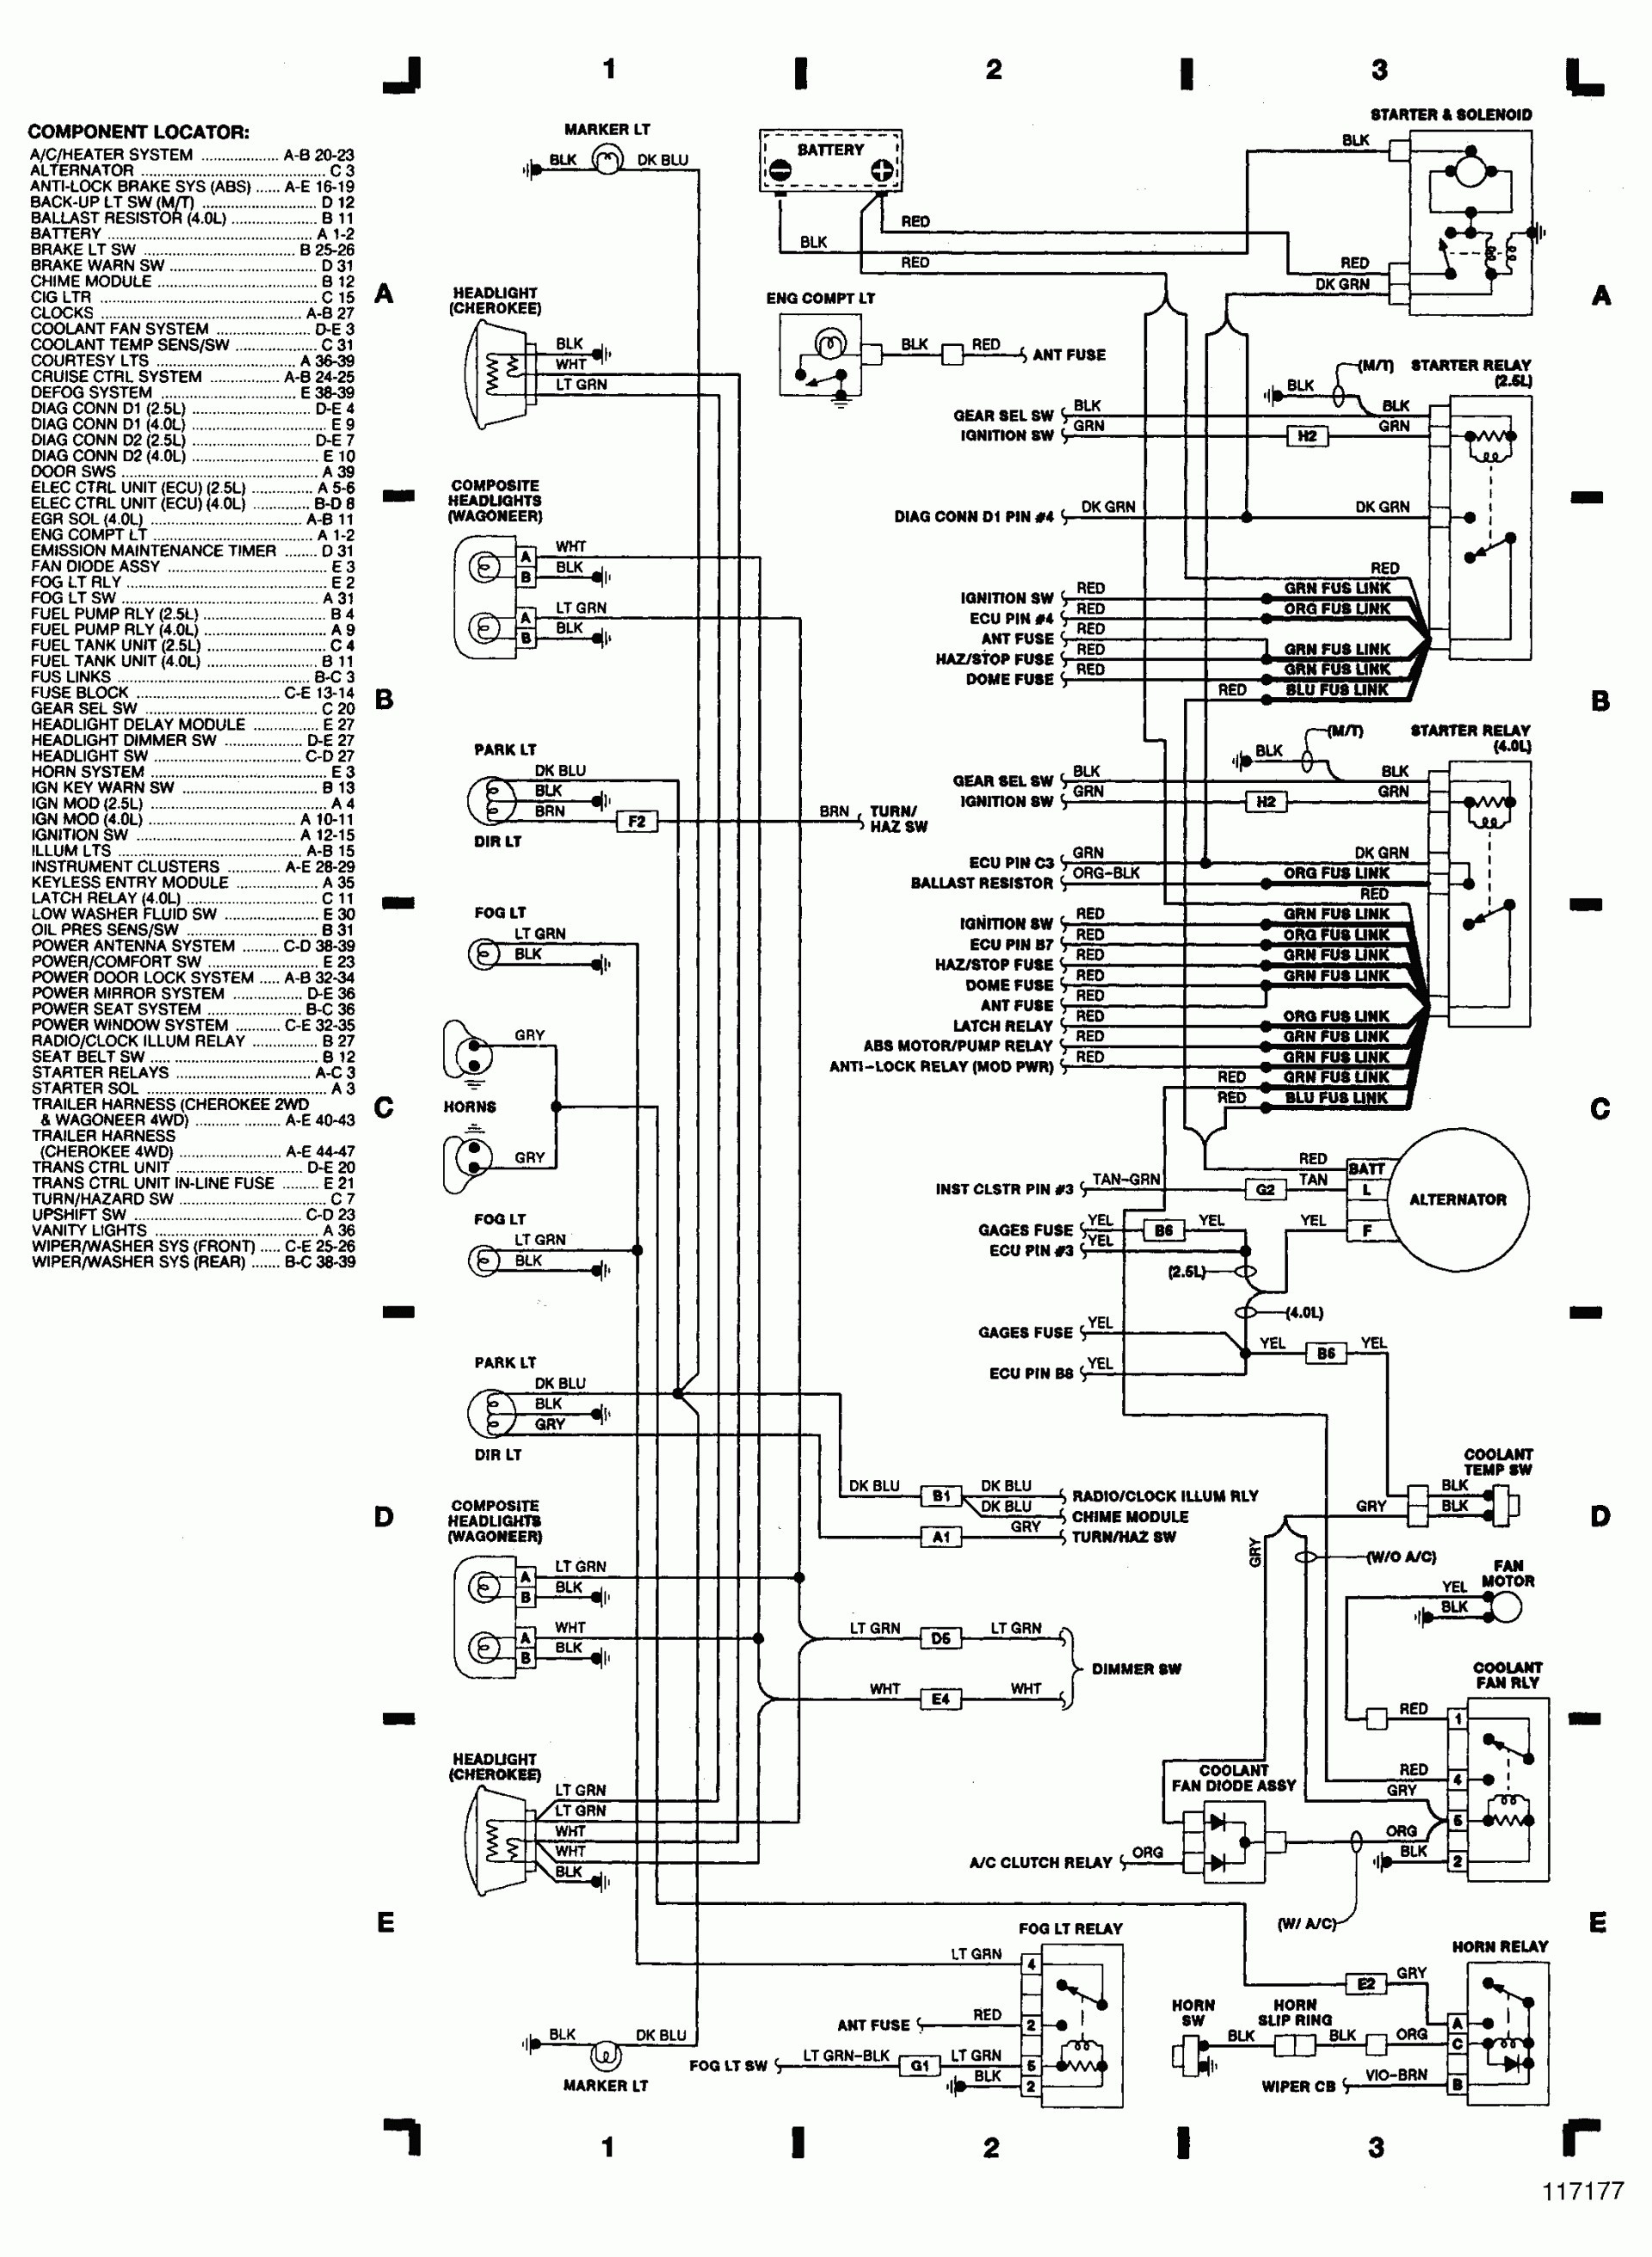 hight resolution of john deere 8400 wiring diagram wiring diagram localwiring schematics john deere 4930 wiring diagram toolbox john